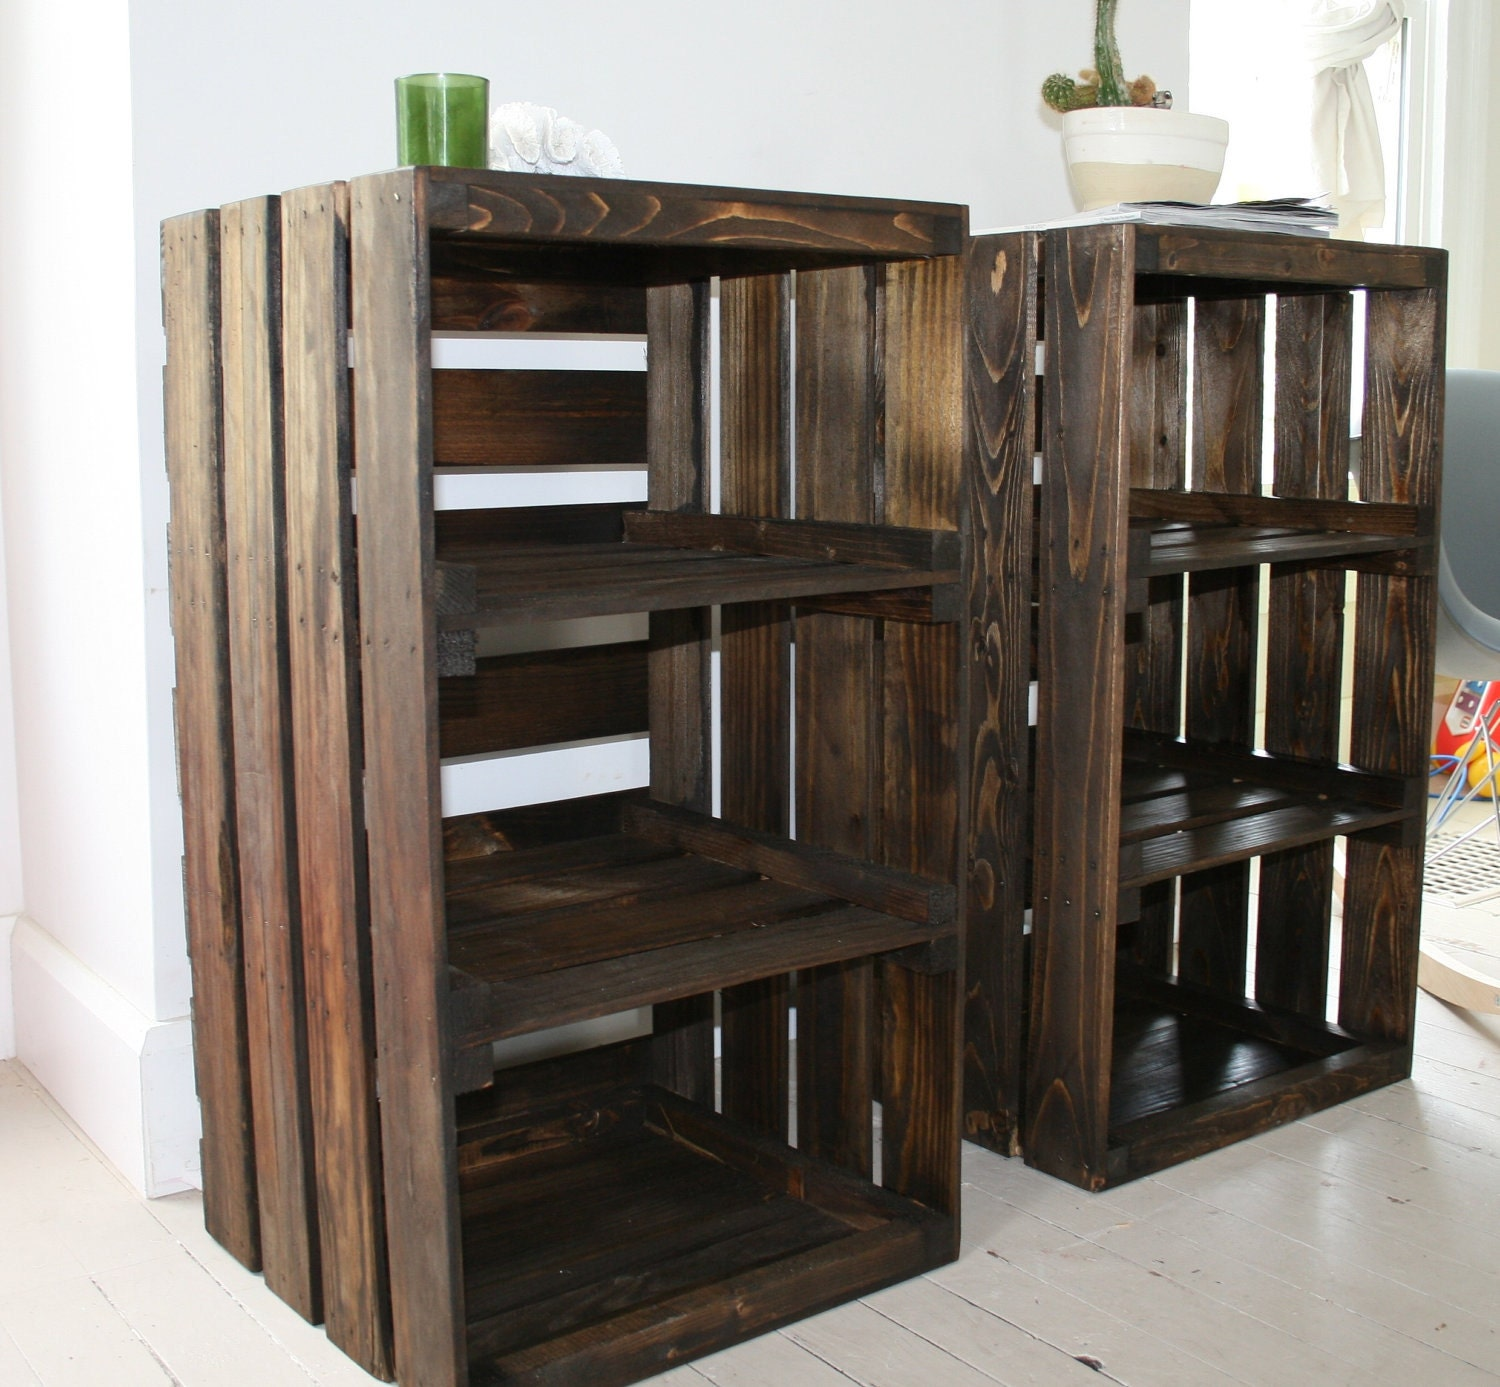 Crates Michaels: Stunning Where To Buy Wooden Crates Canada and buy ...